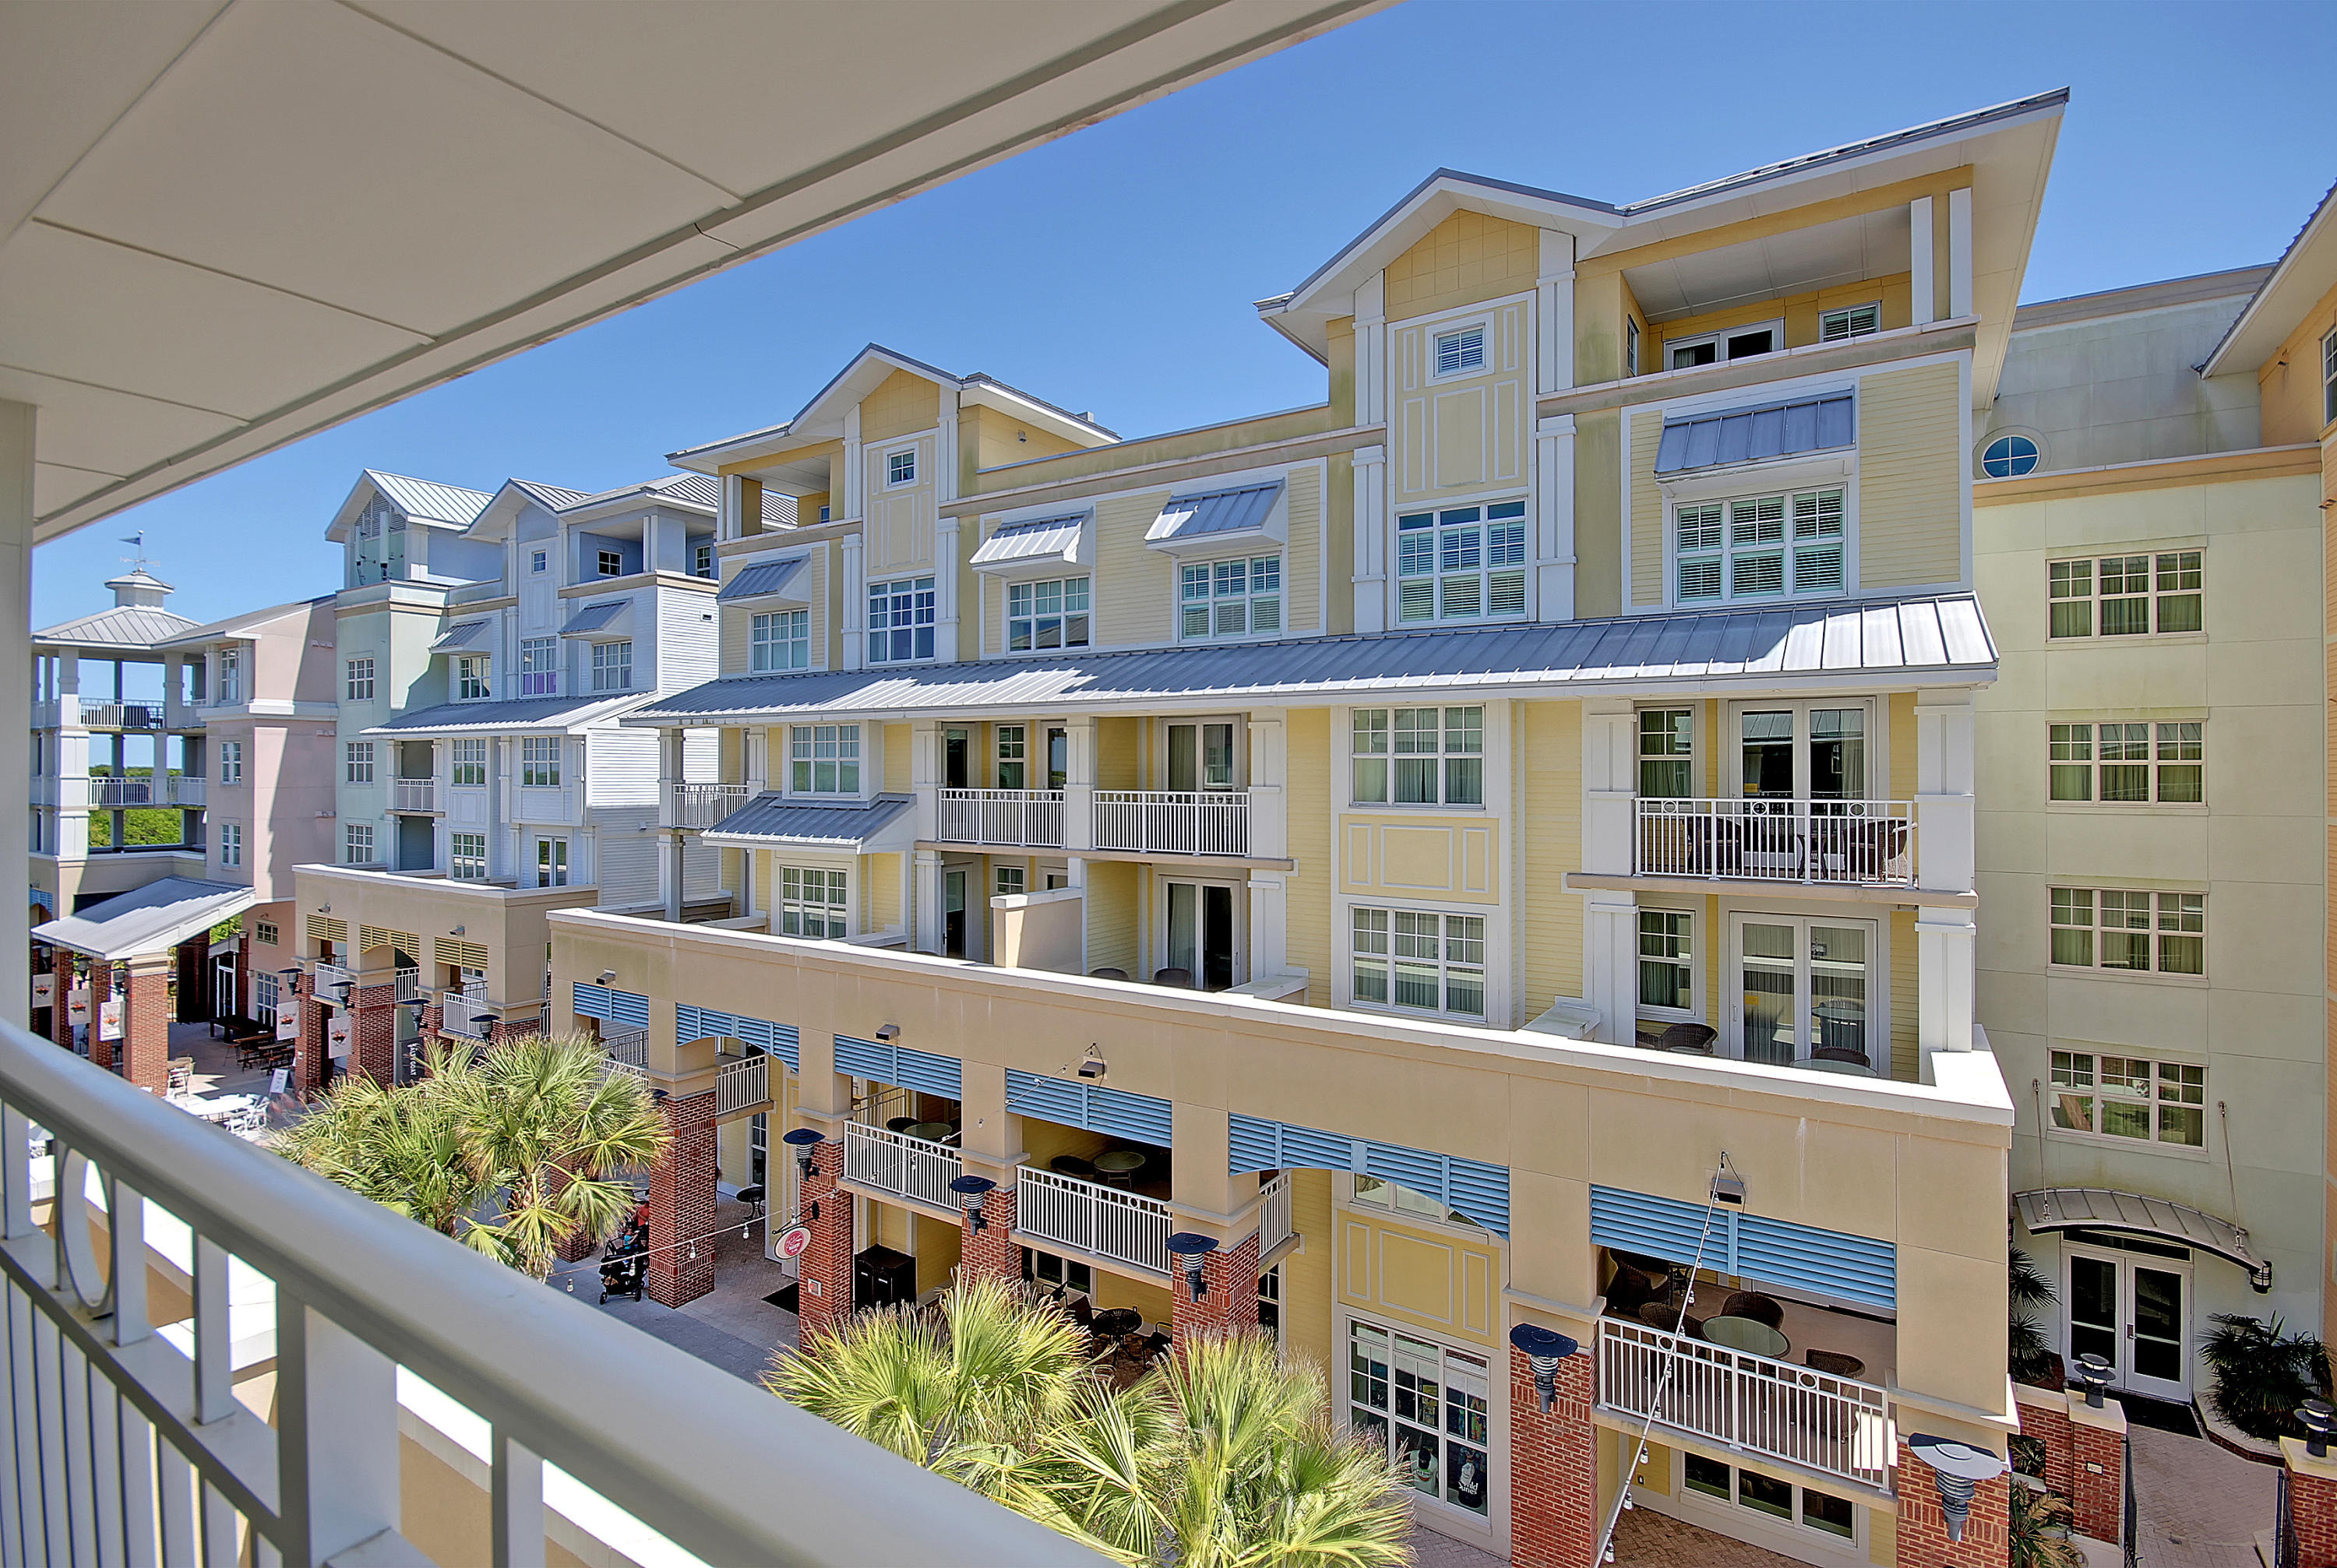 Wild Dunes Homes For Sale - 406-A Village At Wild Dunes, Isle of Palms, SC - 4